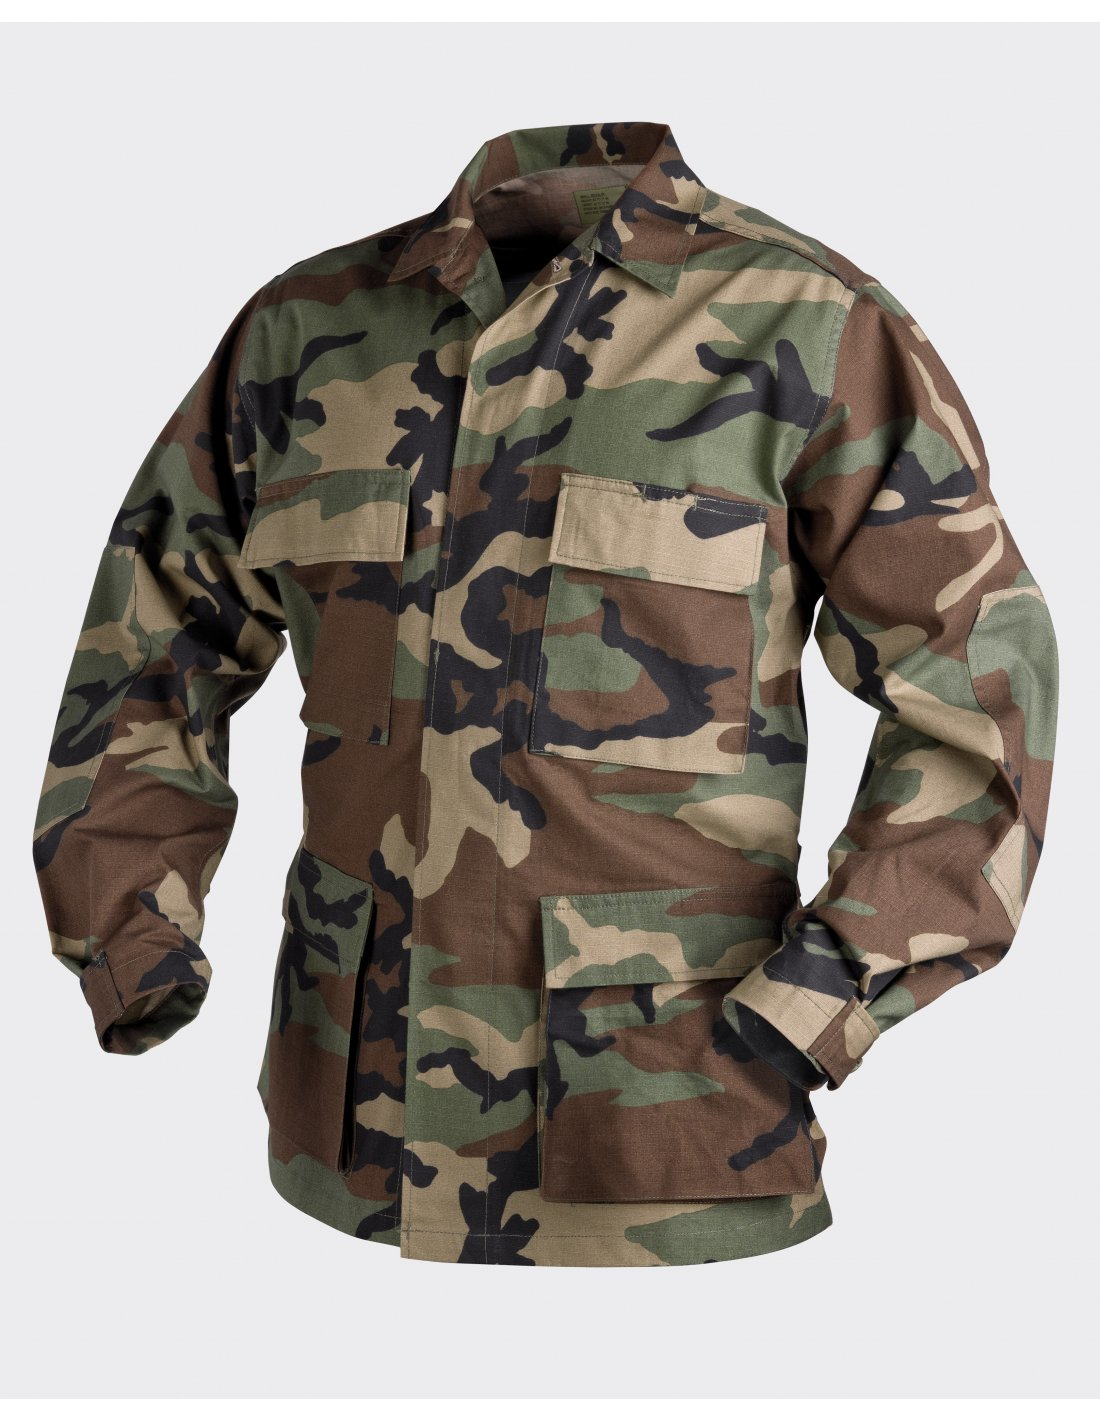 Bdu Uniform Wear 118